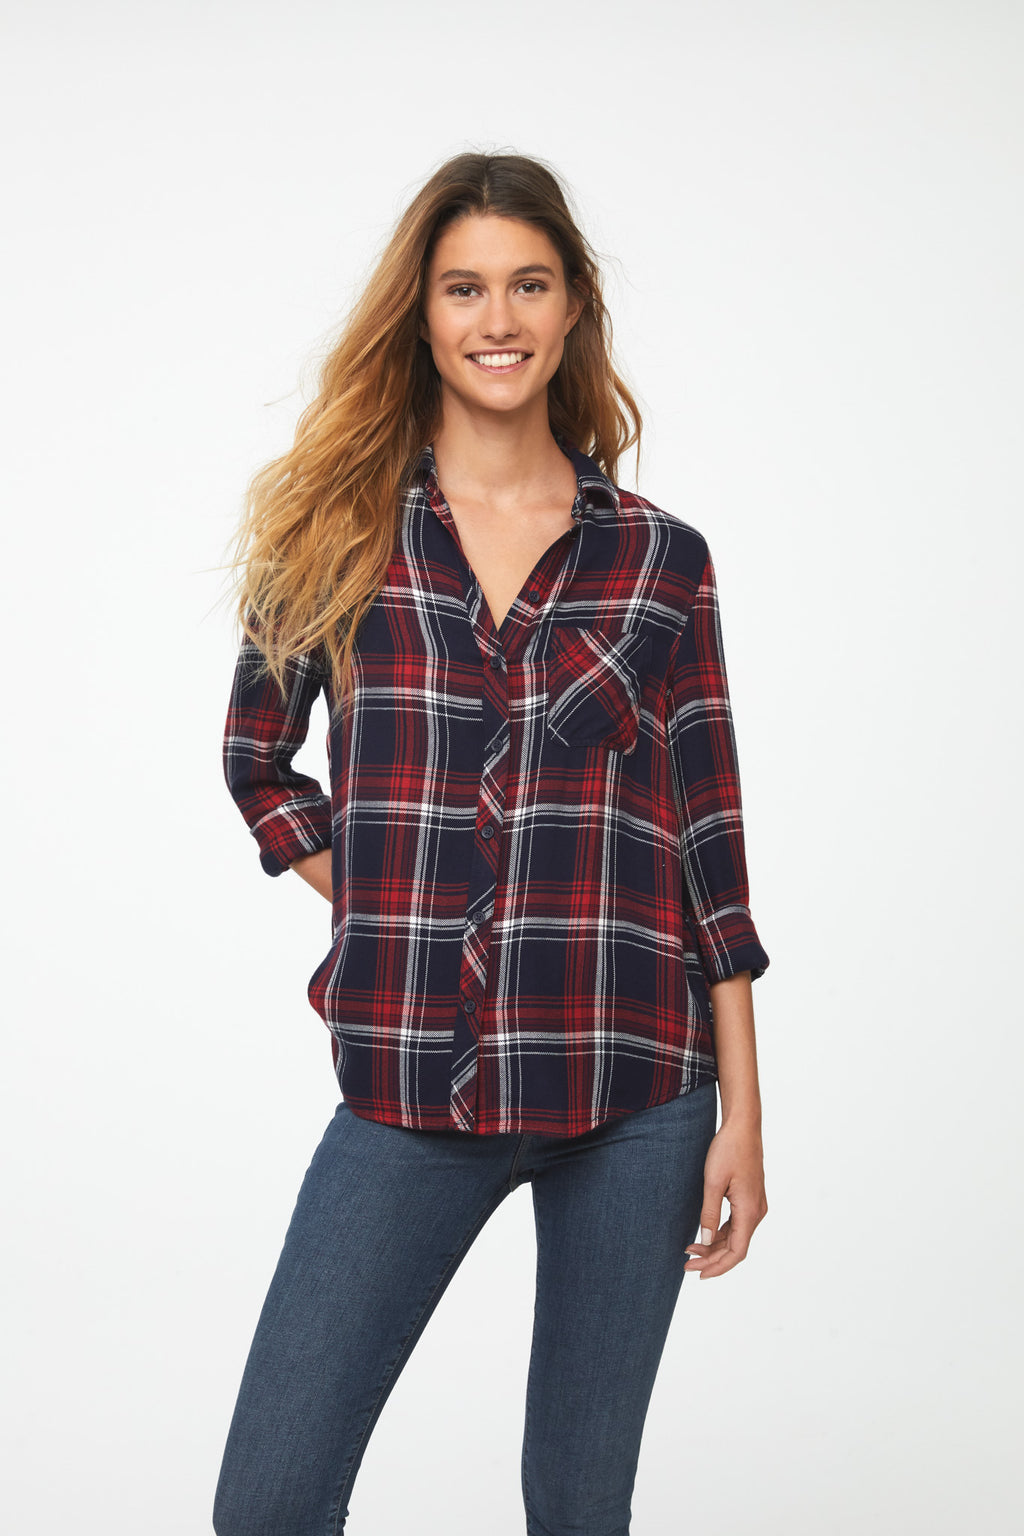 Woman wearing a long sleeve, button-down plaid shirt in red, white, and blue tri-color with a single chest pocket